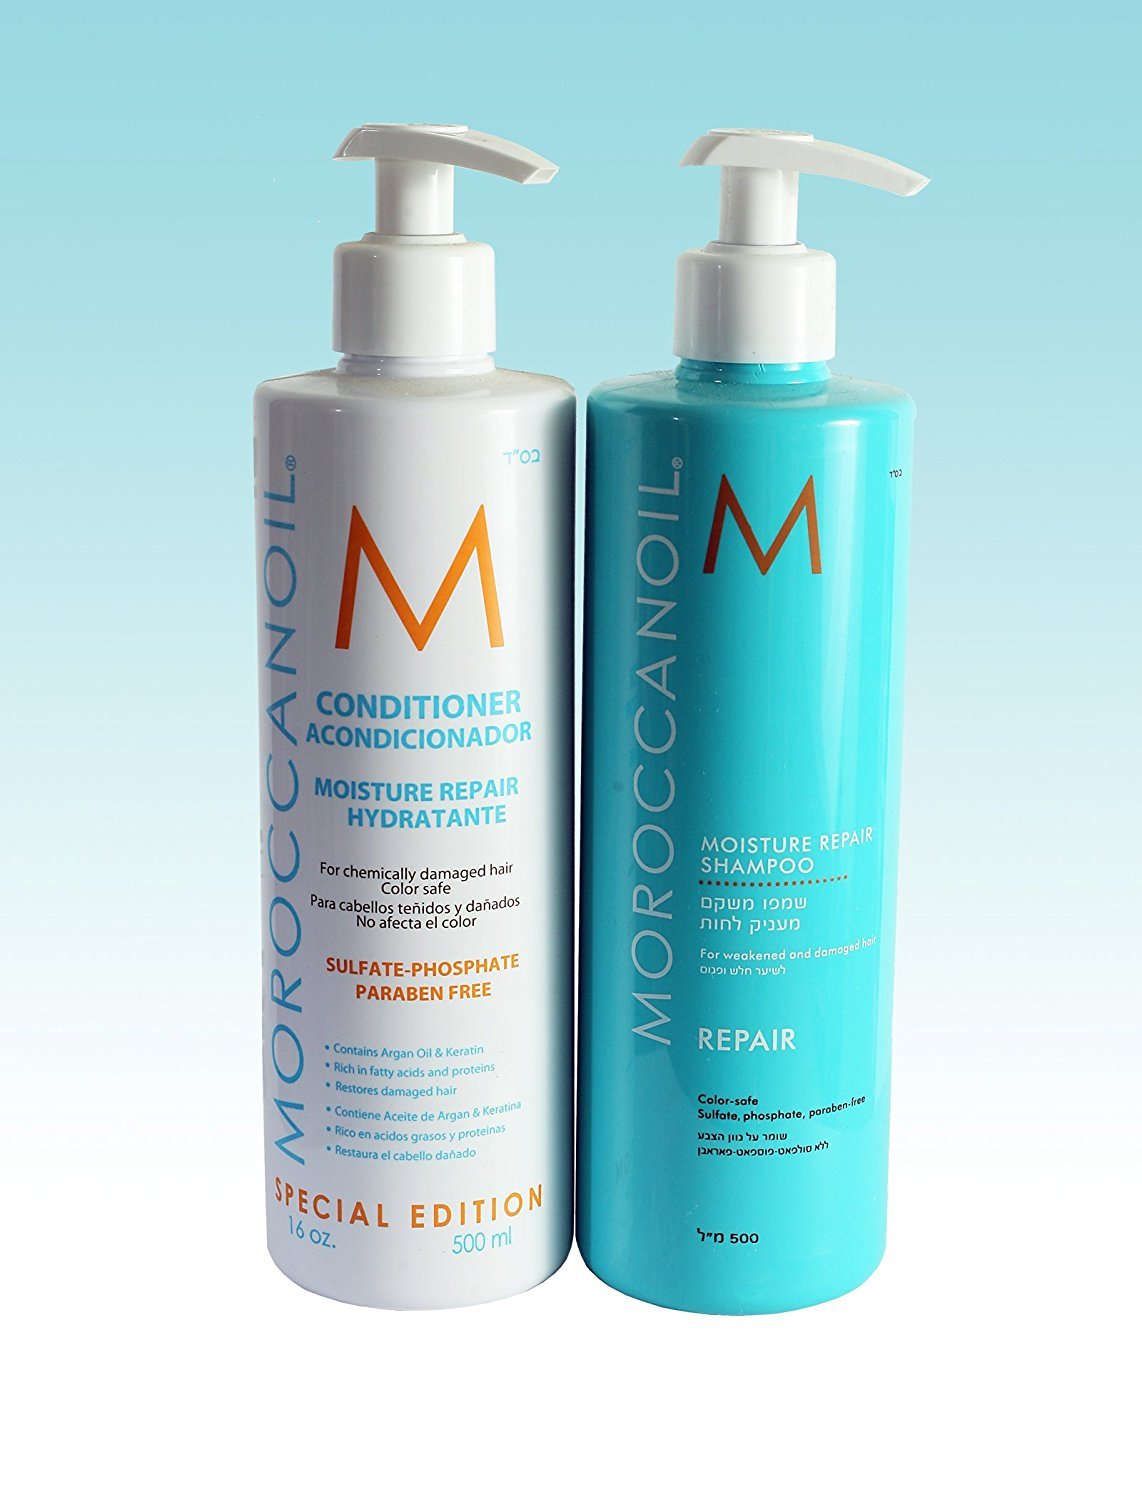 Moroccan Oil Limited Edition 500ml Set - Moisture Repair Shampoo 500ml & Moisture Repair Conditioner 500ml MoroccanOil